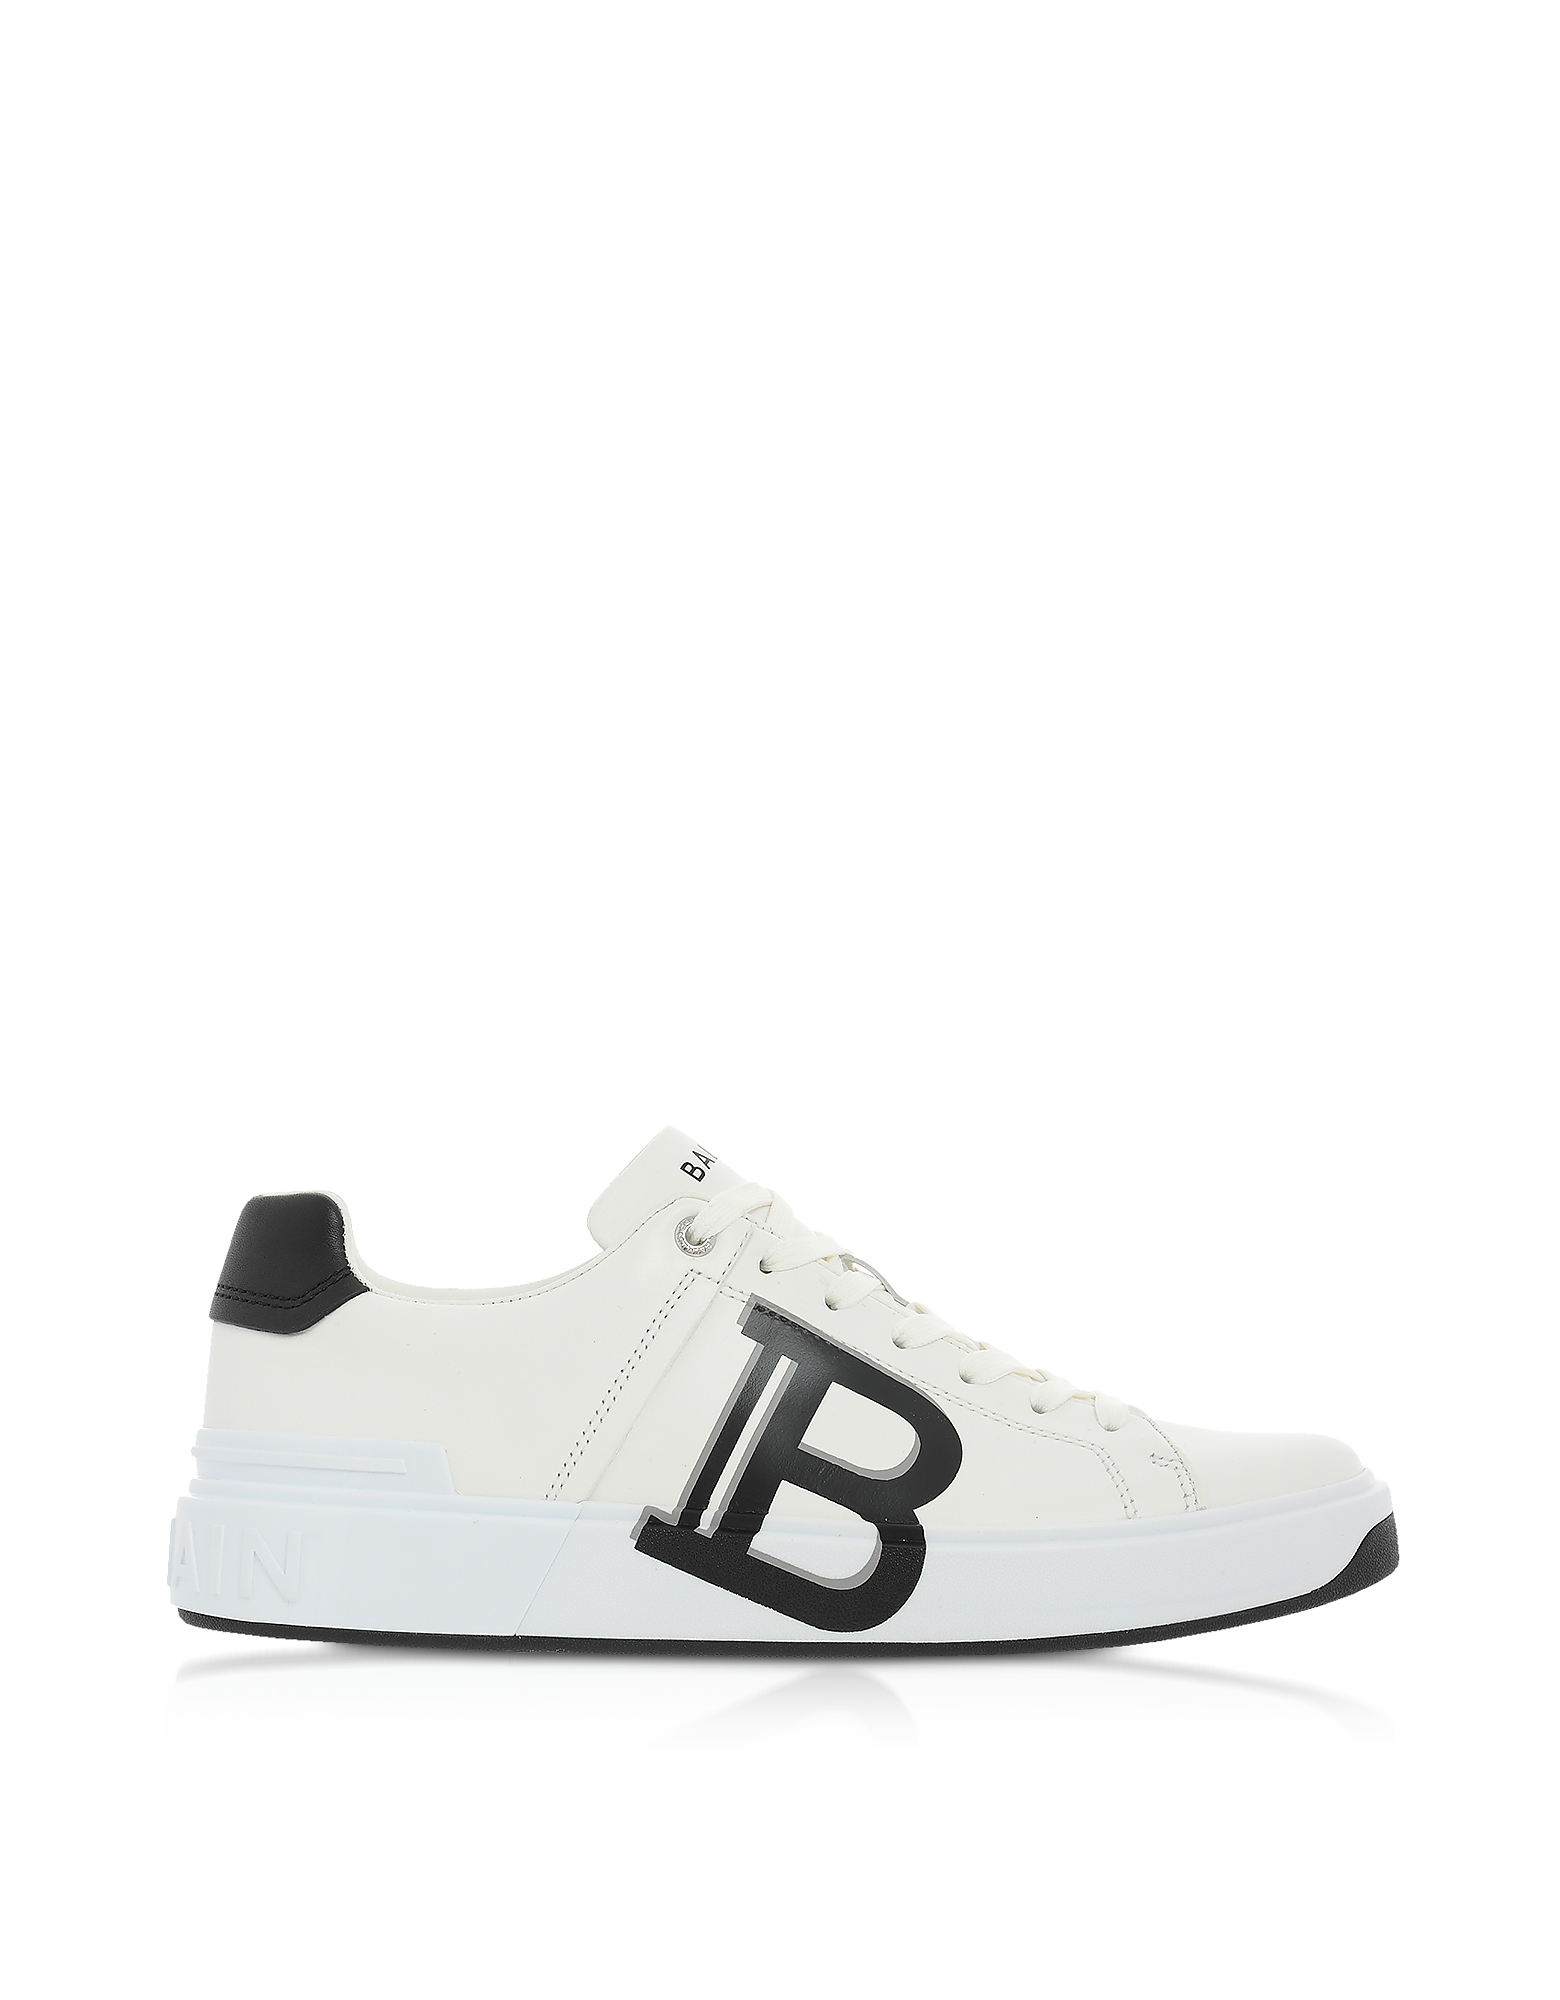 Balmain WHITE & BLACK LOW TOP MEN'S B-COURT SIGNATURE SNEAKERS